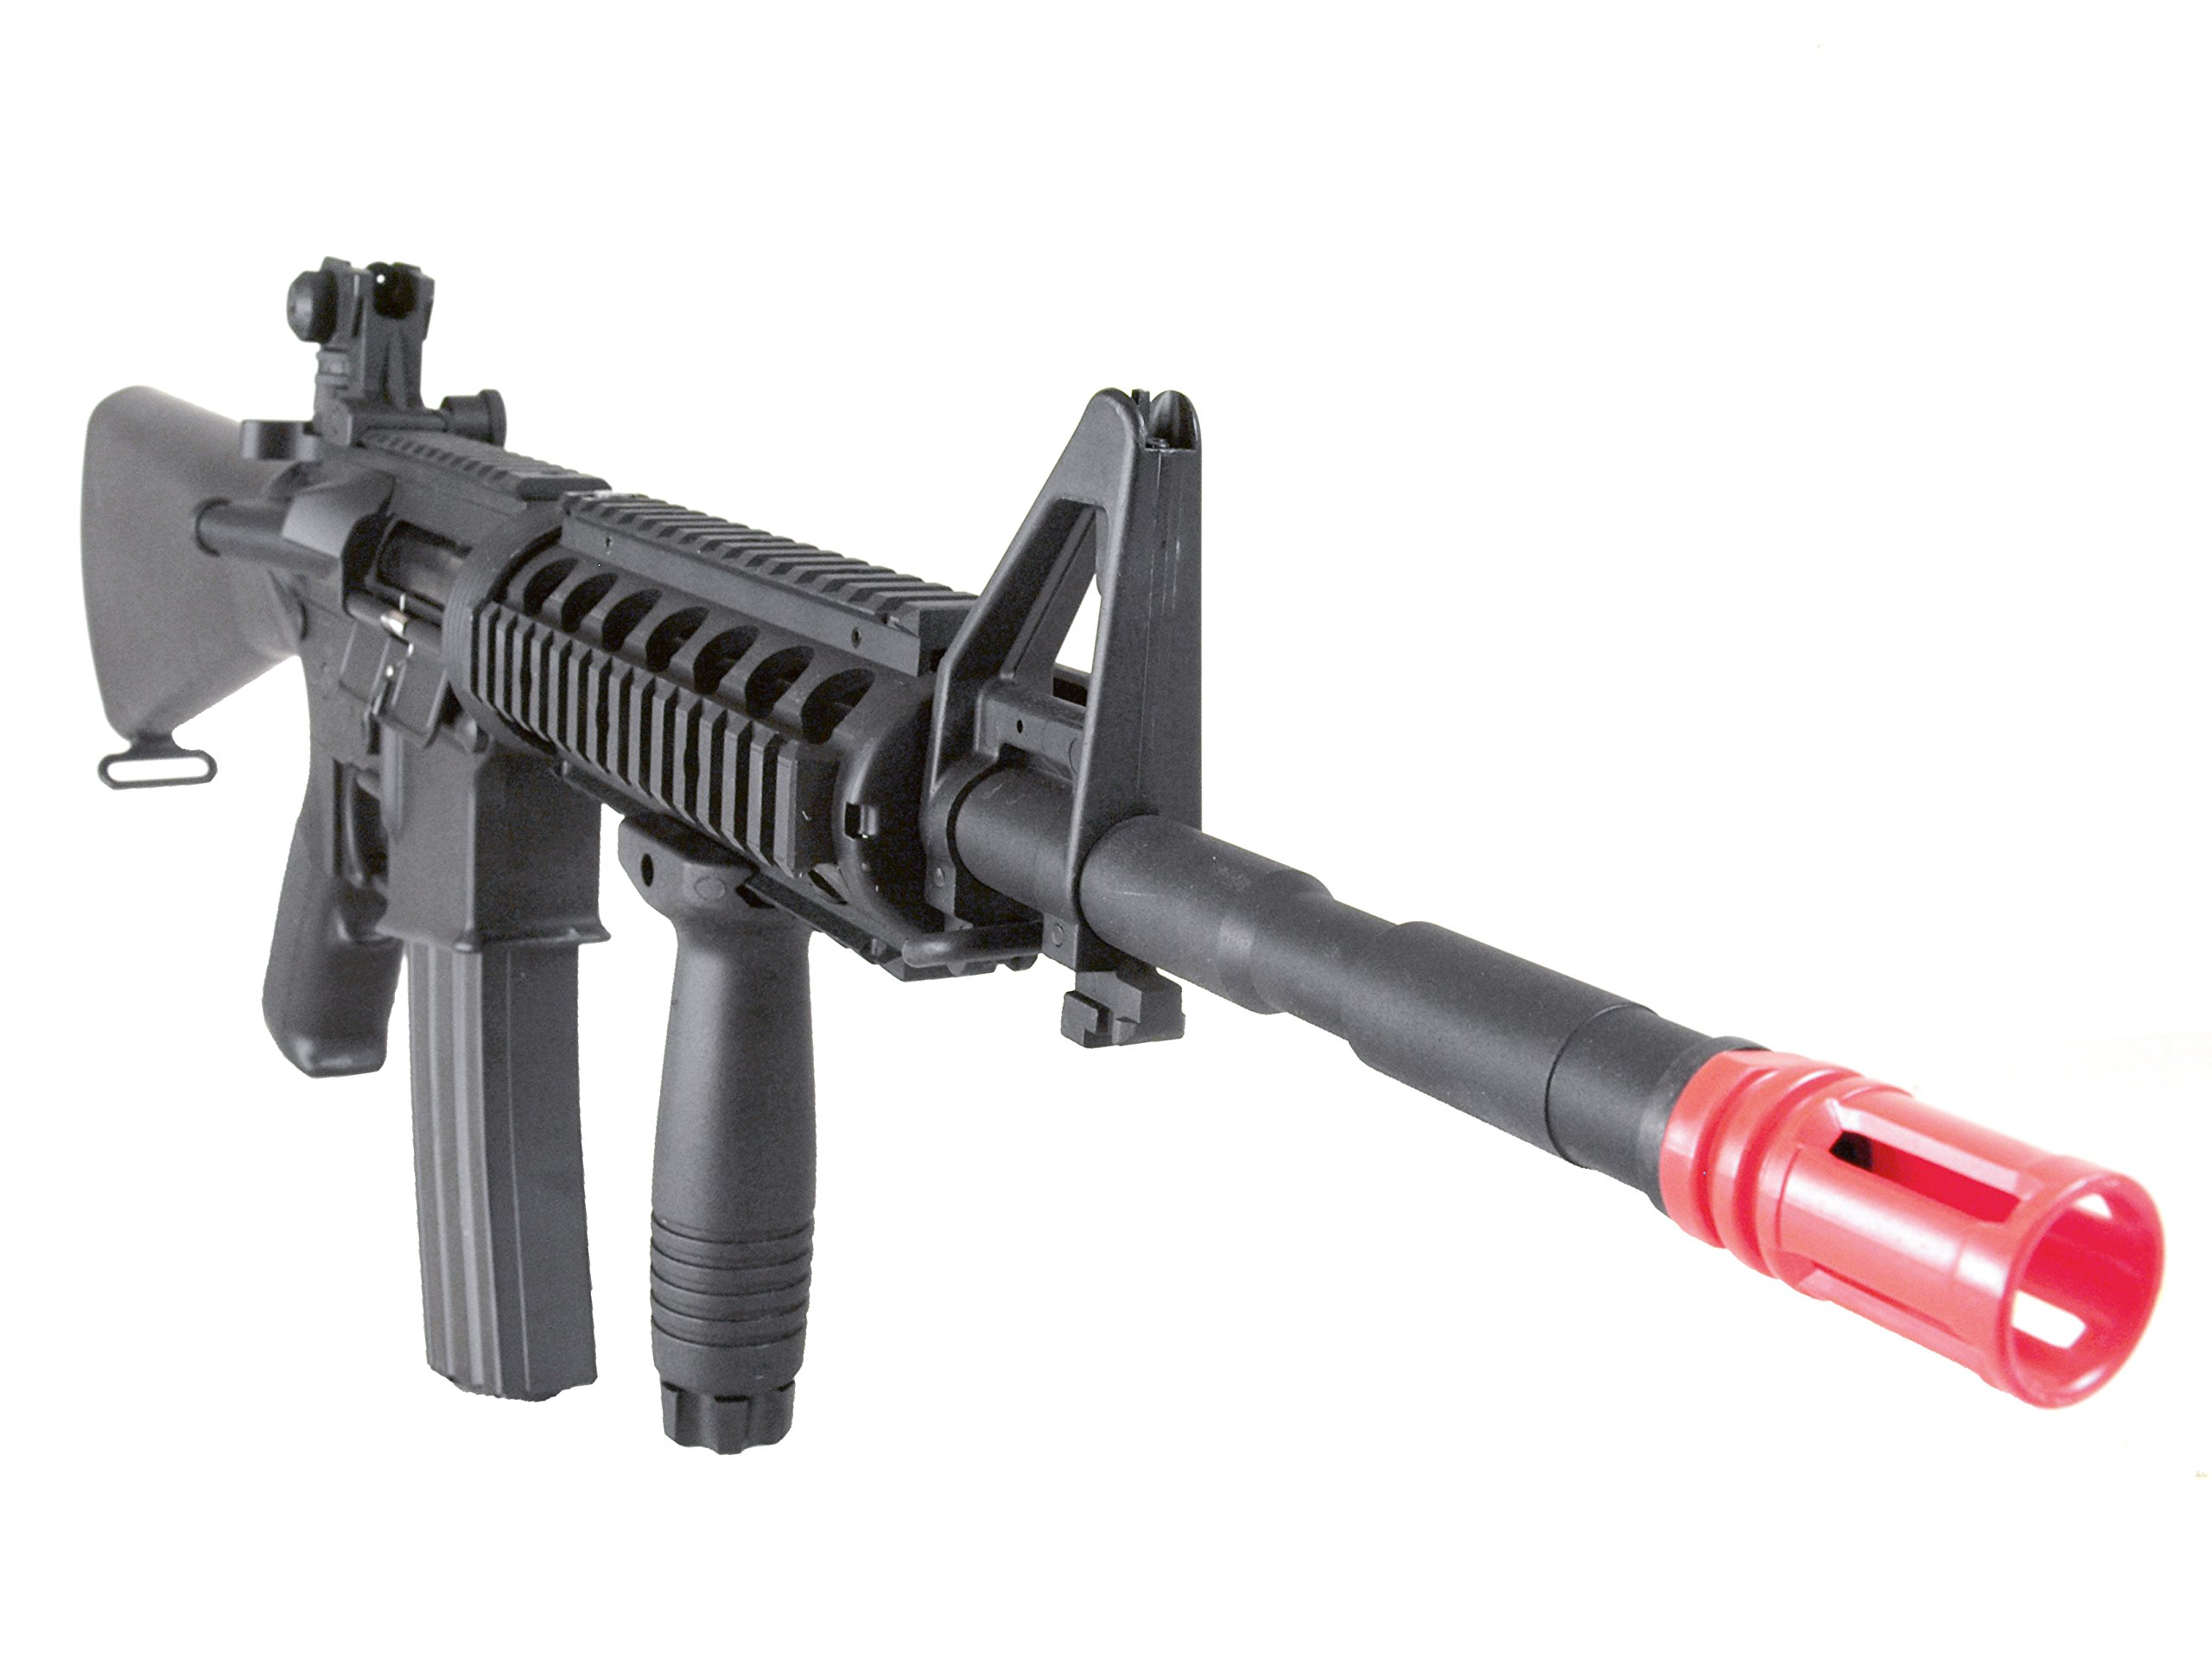 MetalTac Electric Airsoft Gun M4 SR16 Sniper A&K with ABS Body, Metal Gearbox Version 2, Full Auto AEG, Upgraded Powerful Spring 380 Fps with .20g BBs